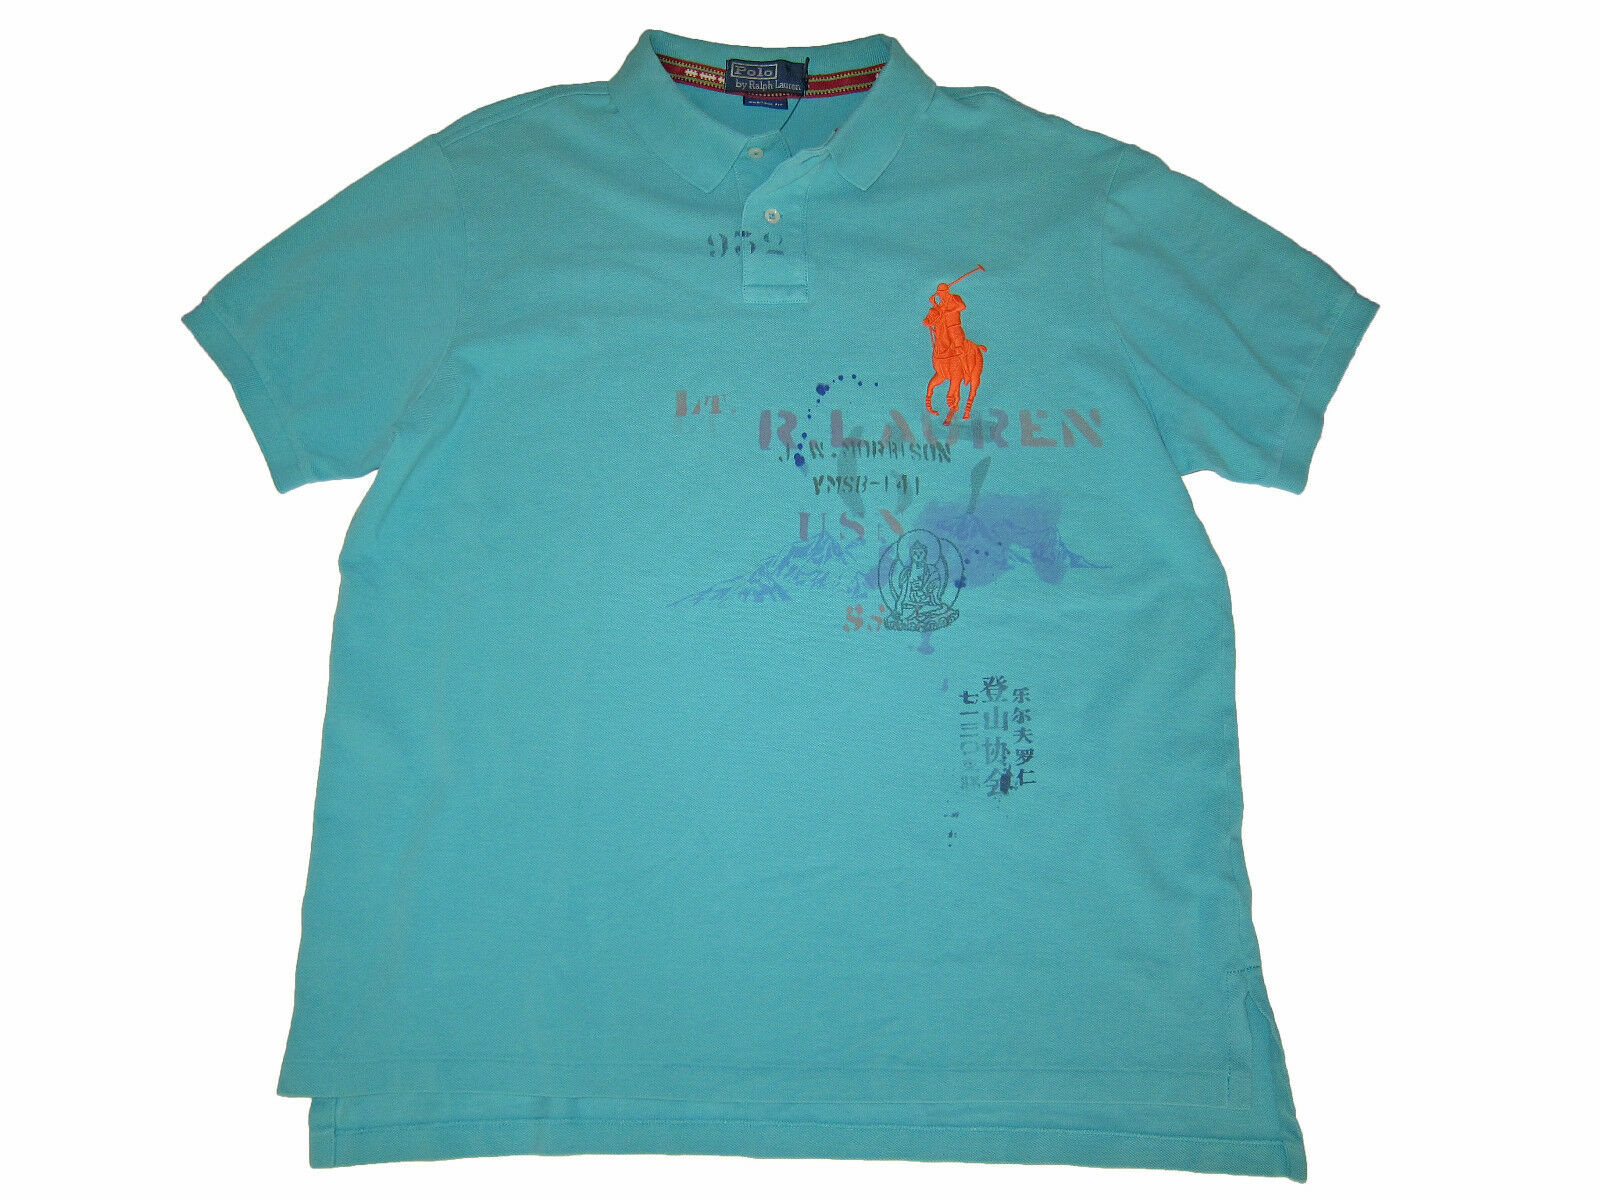 Polo Ralph Lauren Light bluee Tribal Lettering Beach Surf Big Pony Shirt XL